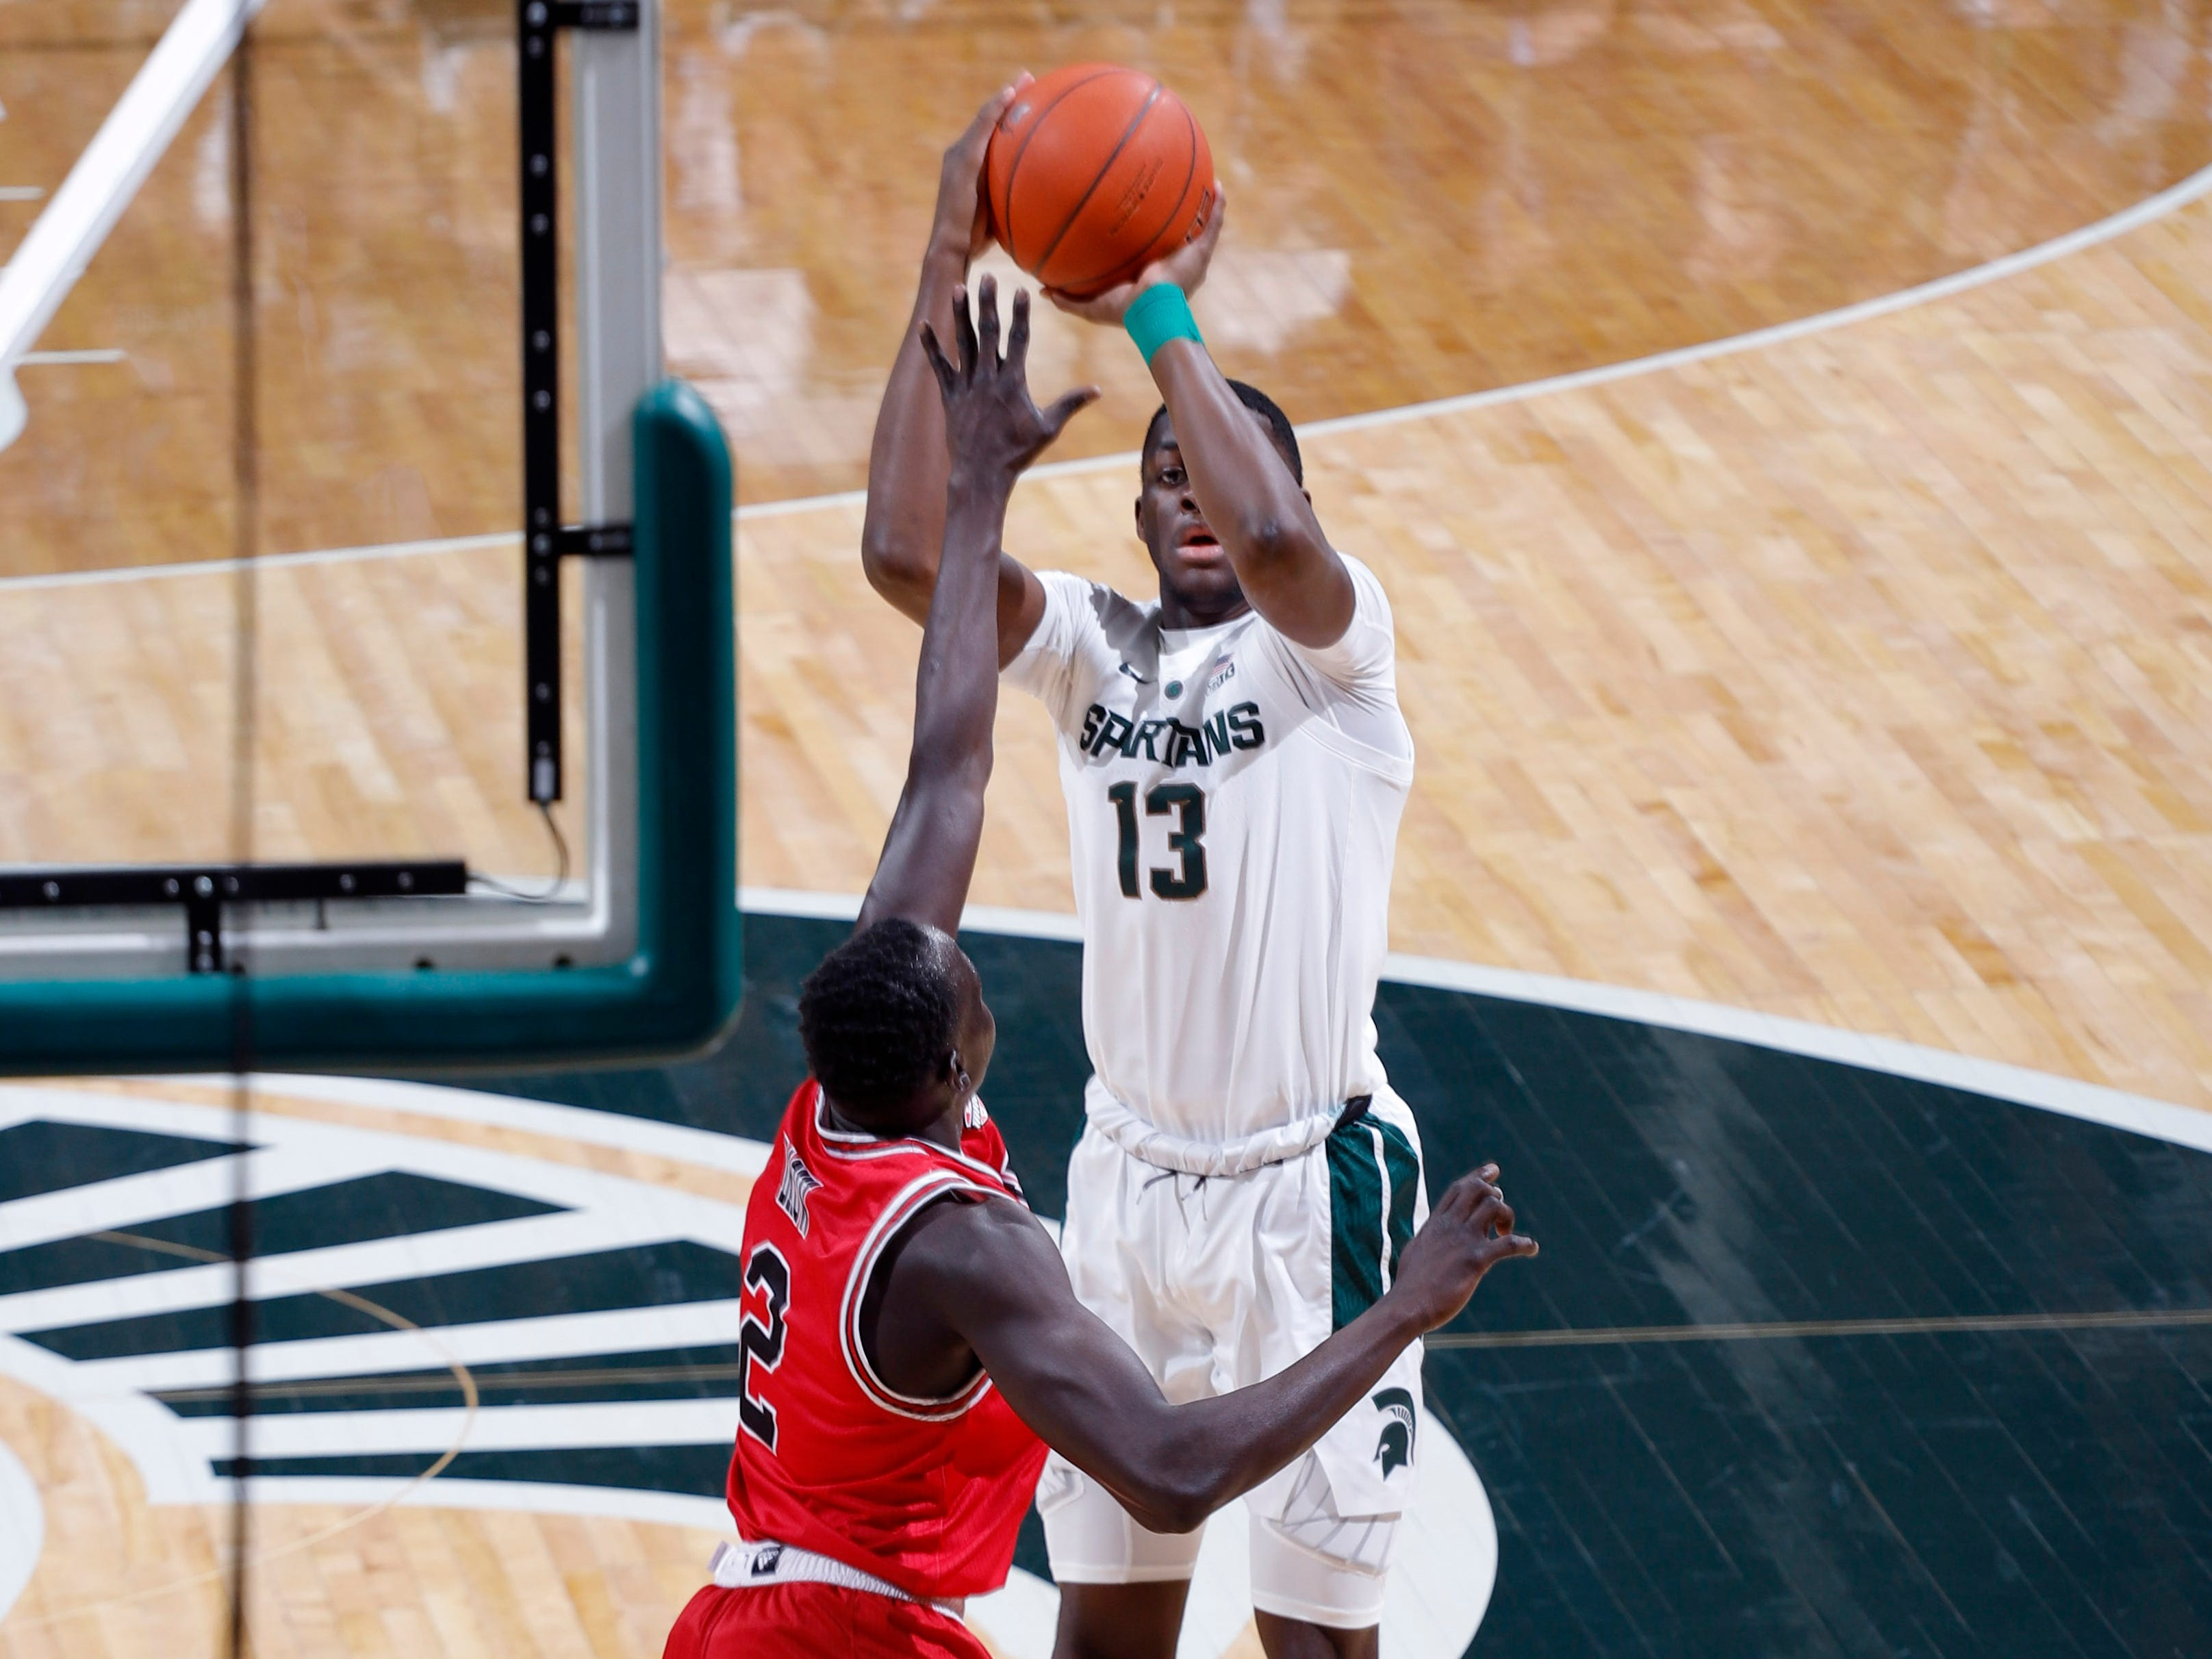 Michigan State's Gabe Brown shoots a 3-pointer against Northern Illinois' Gairges Daow, Saturday, Dec. 29, 2018, in East Lansing, Mich.